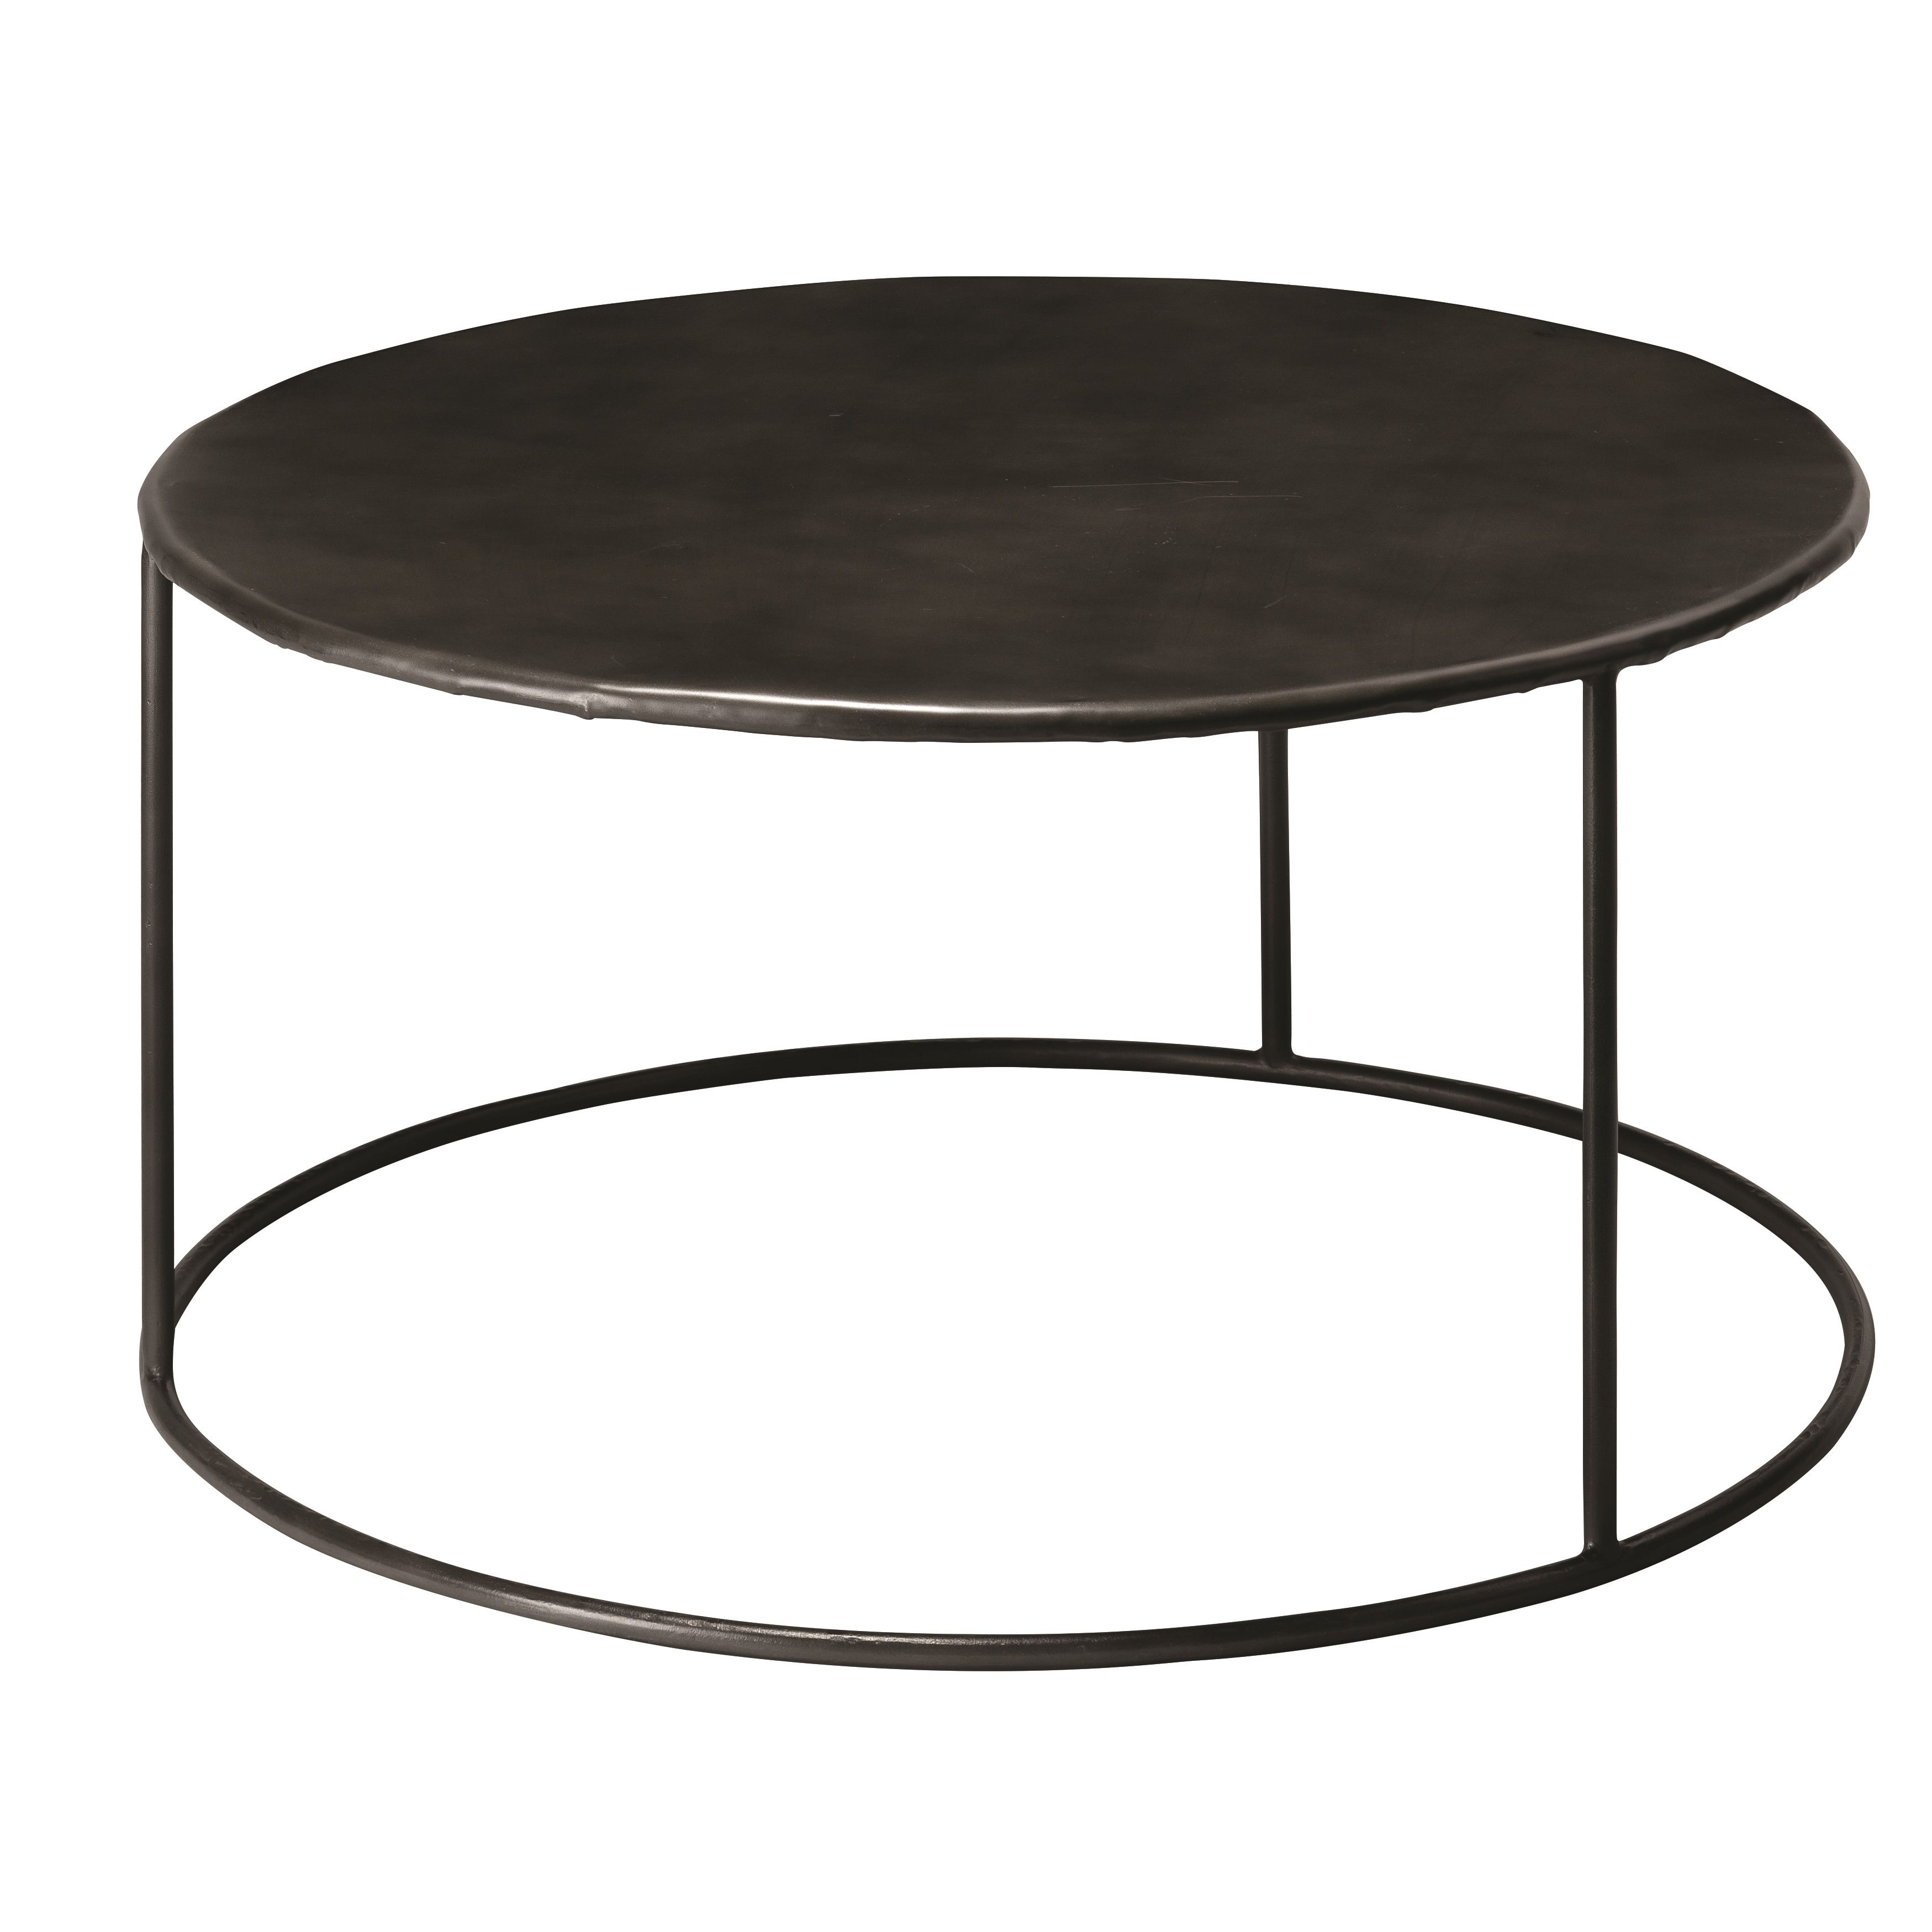 - Filton Frame Coffee Table Iron Coffee Table, Contemporary Coffee